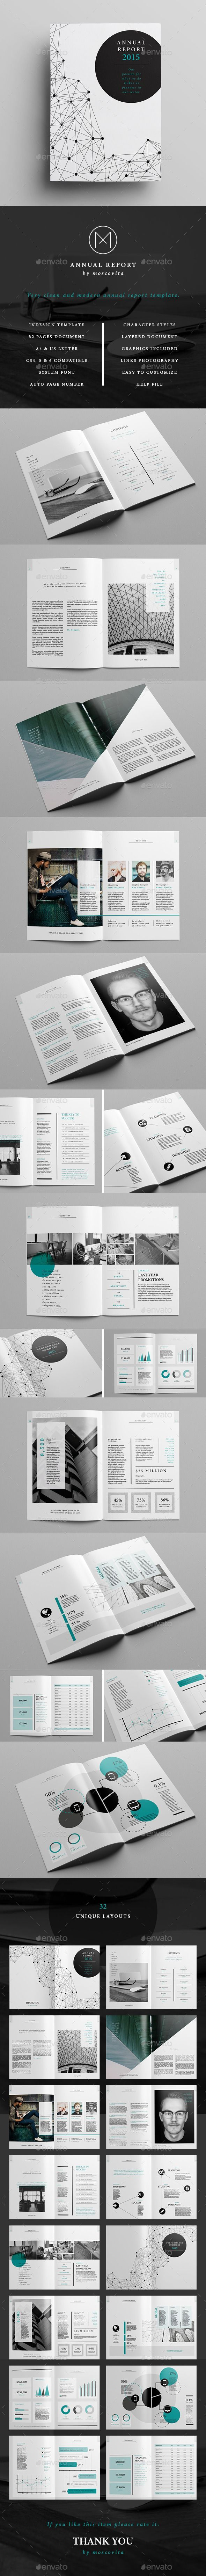 The Annual Report Template is perfect for the publication of a complete and professional annual report. It's divided into a first part with photos and narrative to provide all the interesting information about the company and a second part, contains the financial details with graphics for a visual result. Download: http://graphicriver.net/item/annual-report/11224010?ref=ksioks: